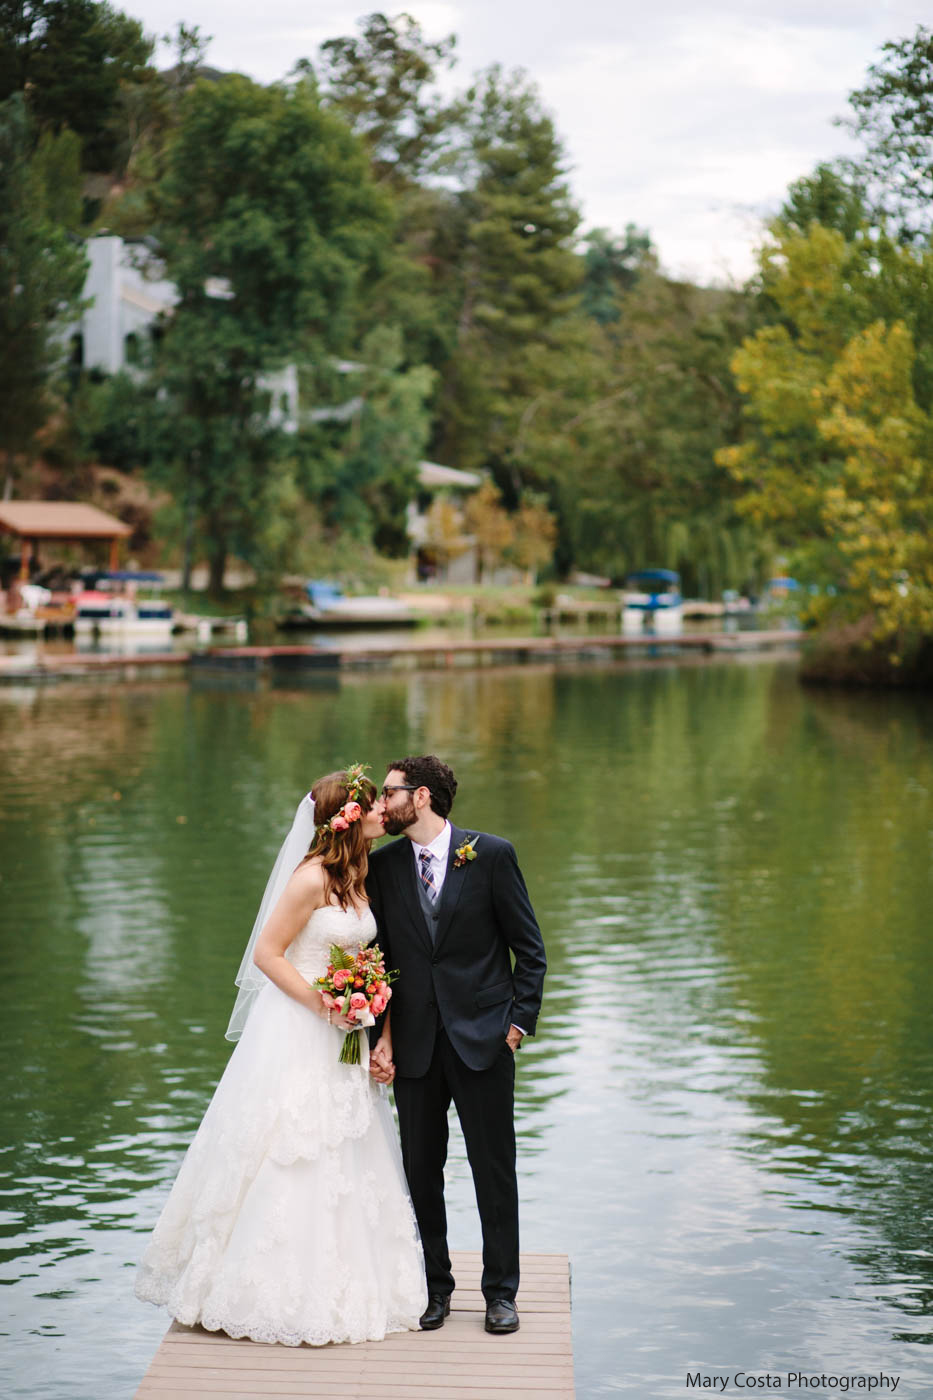 lakeside-kiss-malibou-lake-lodge-wedding-mary-costa-photography.jpg